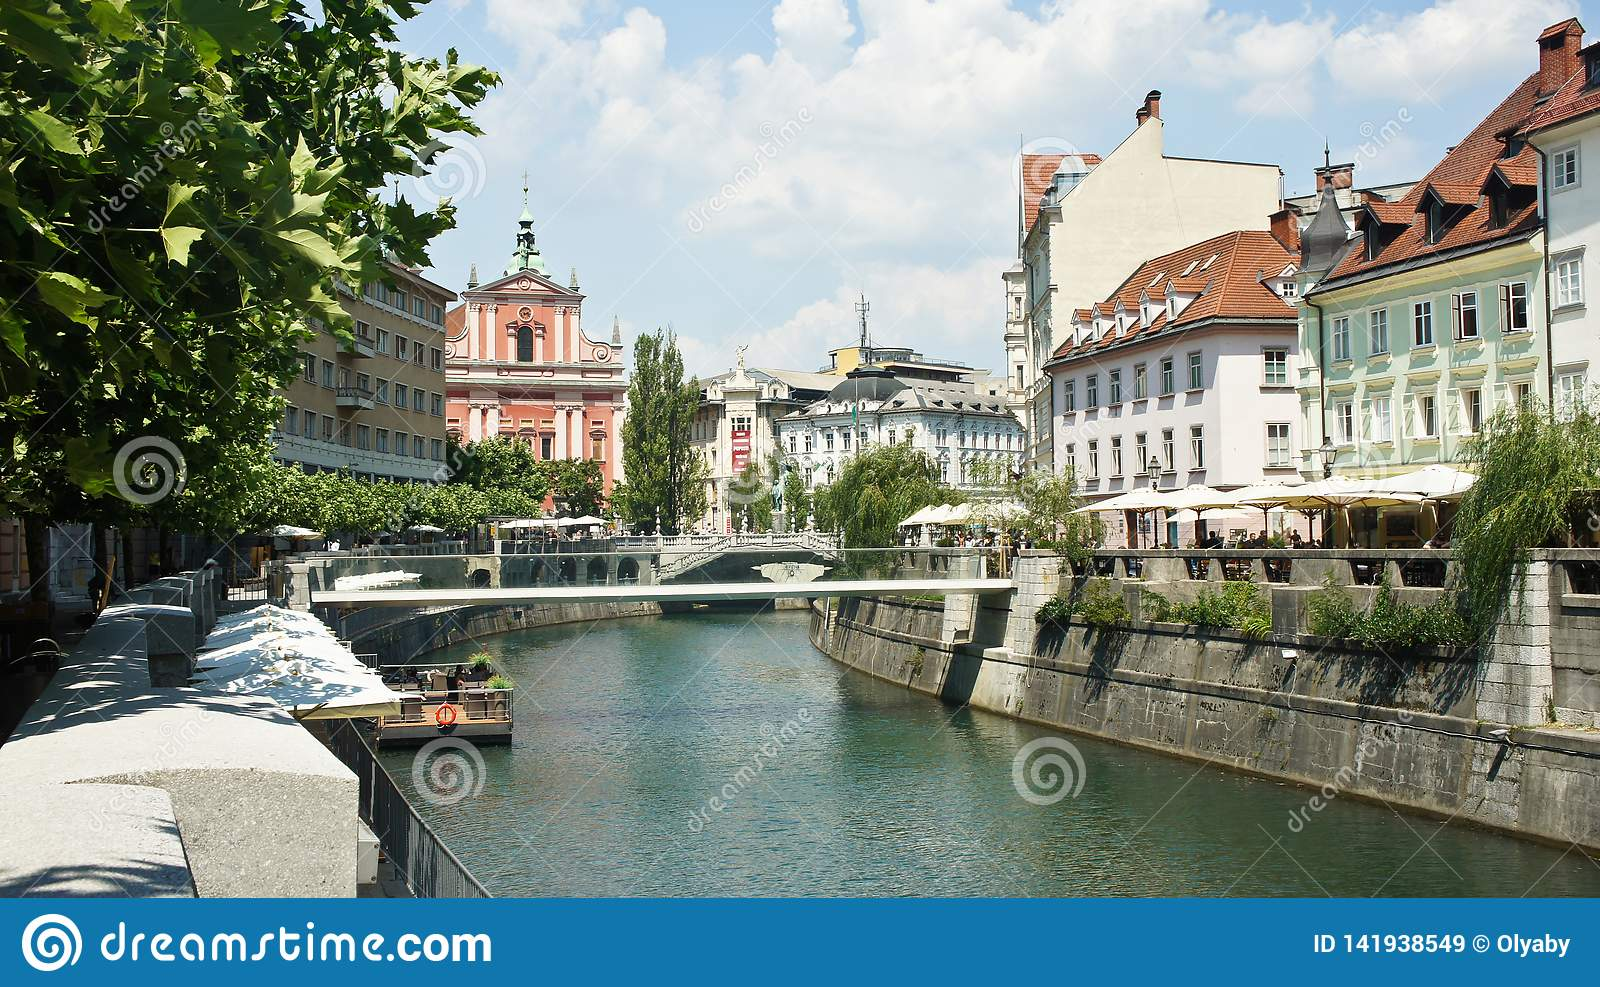 Scenic view of the houses on Ljubljanica river bank in old town, beautiful architecture, sunny day, Ljubljana, Slovenia